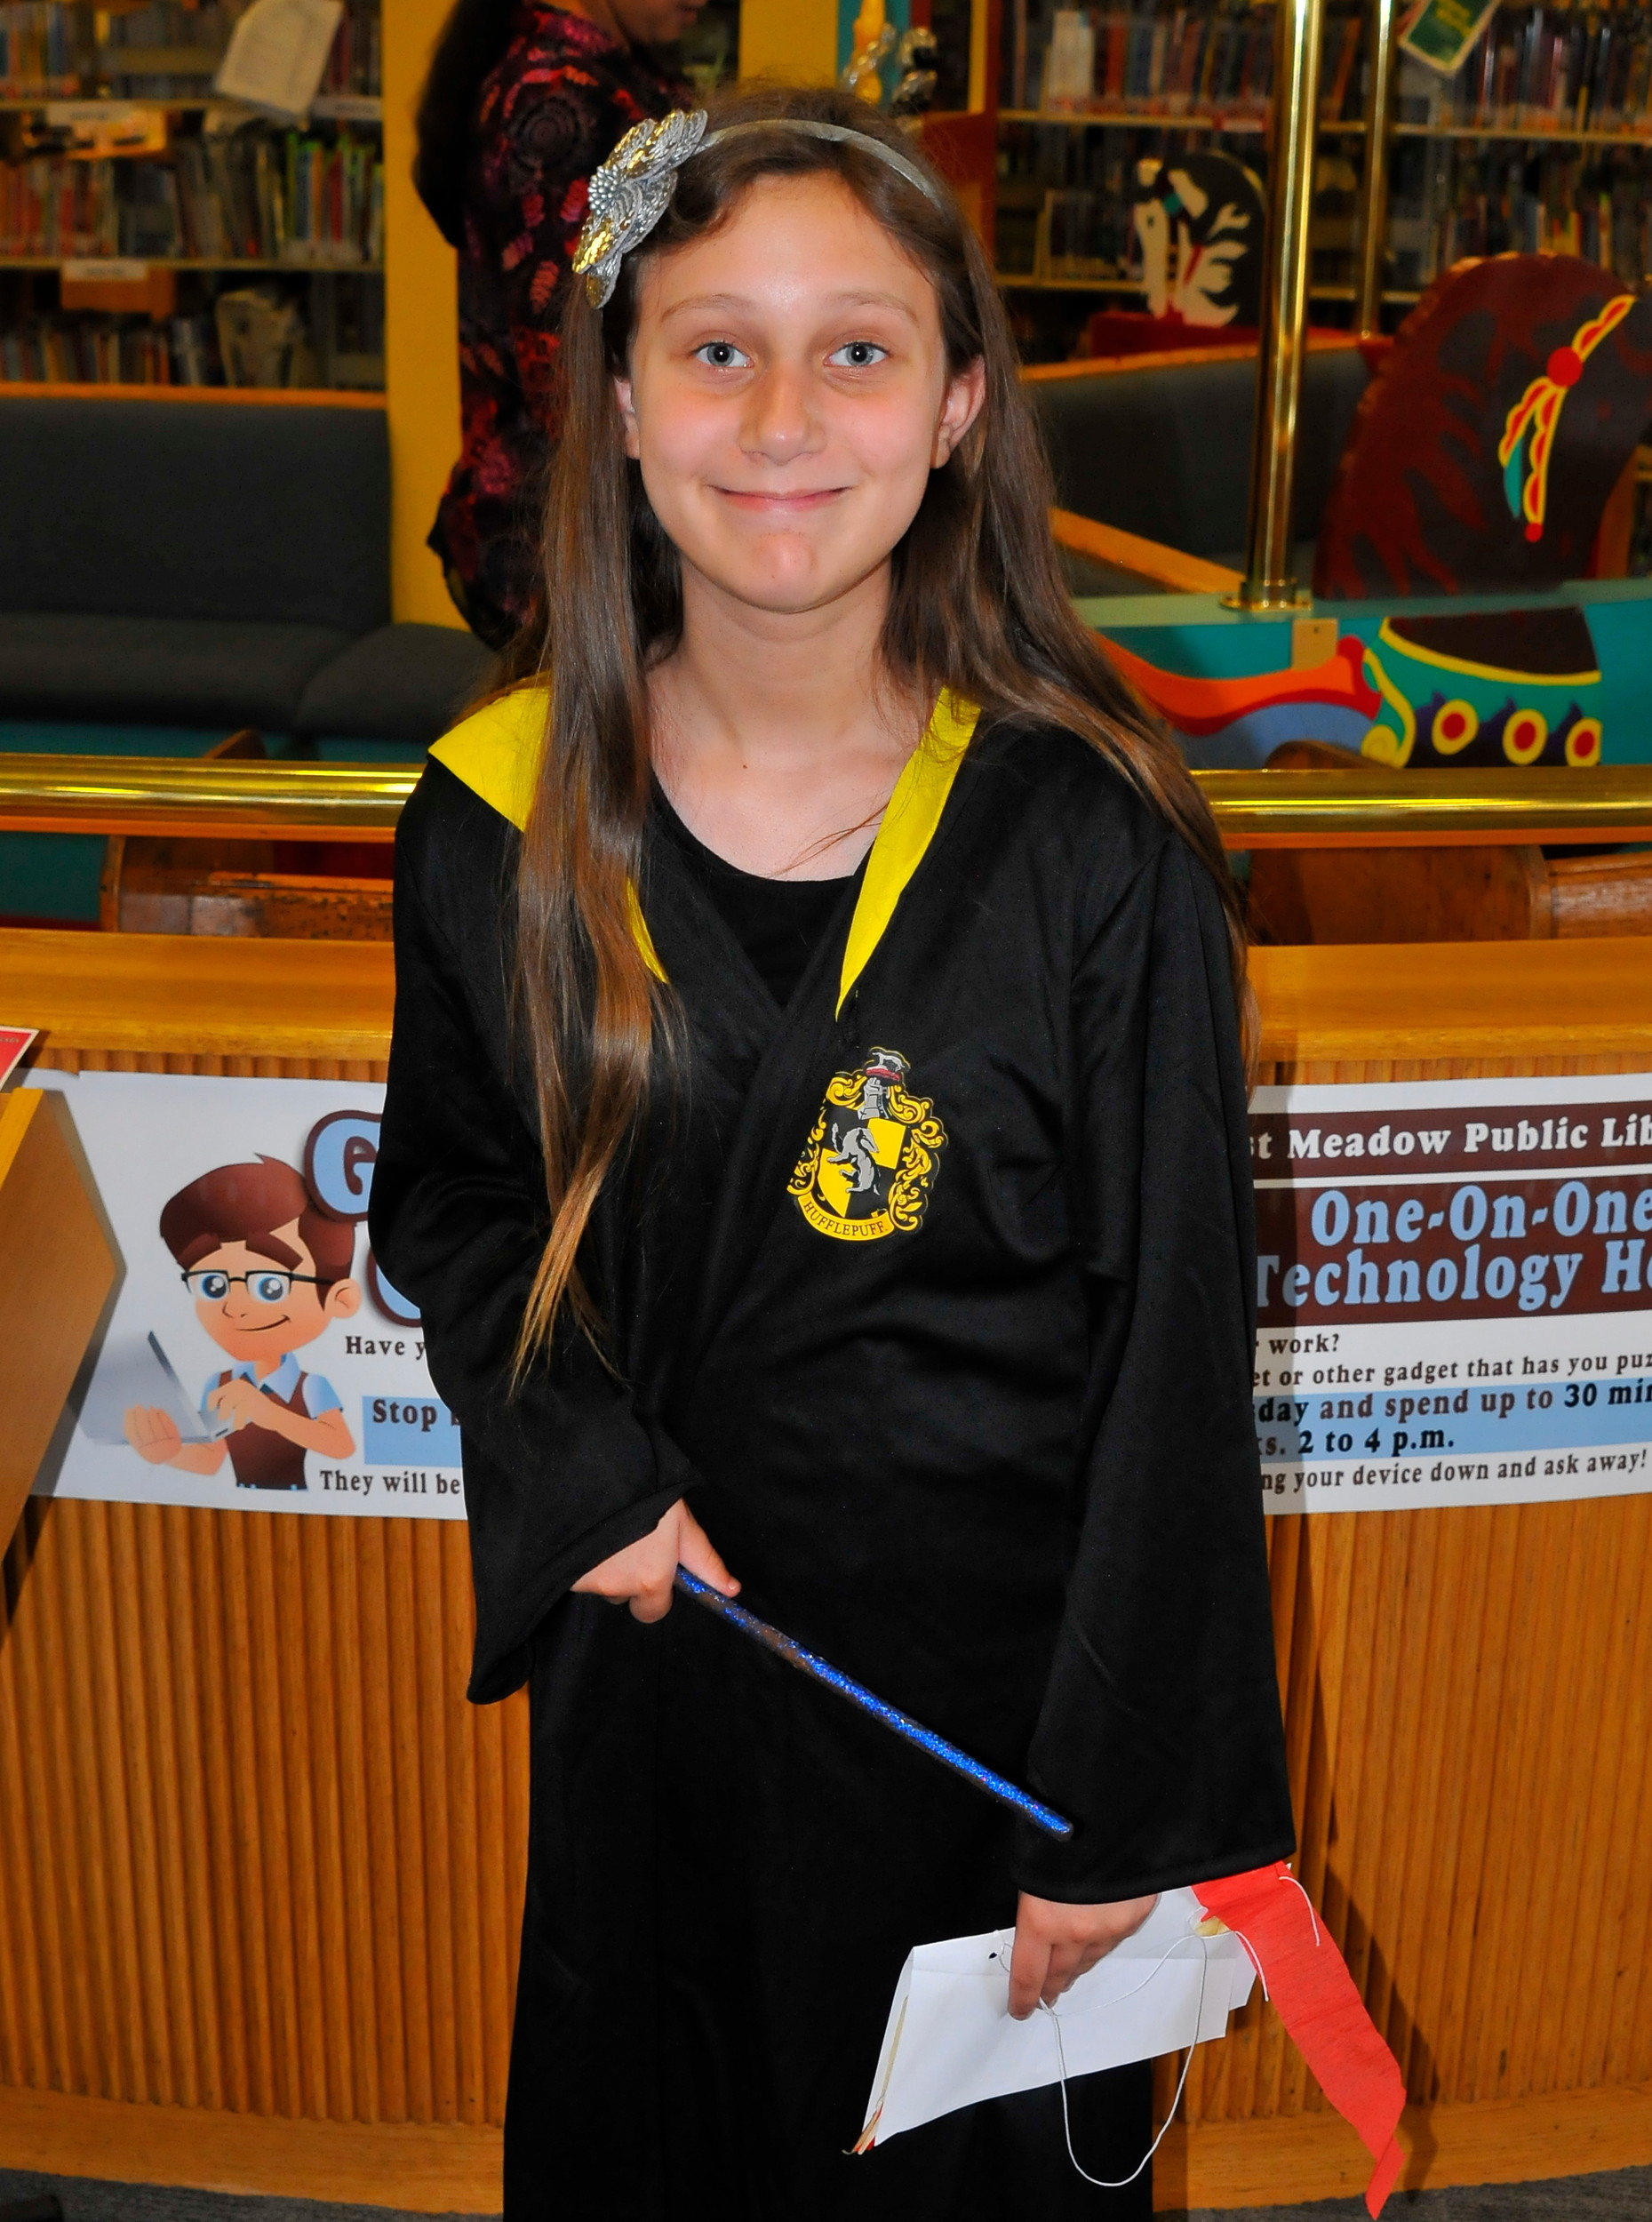 Dressed in a Hufflepuff House robe, Sharon Puma, 10, of East Meadow, crafted a broom.